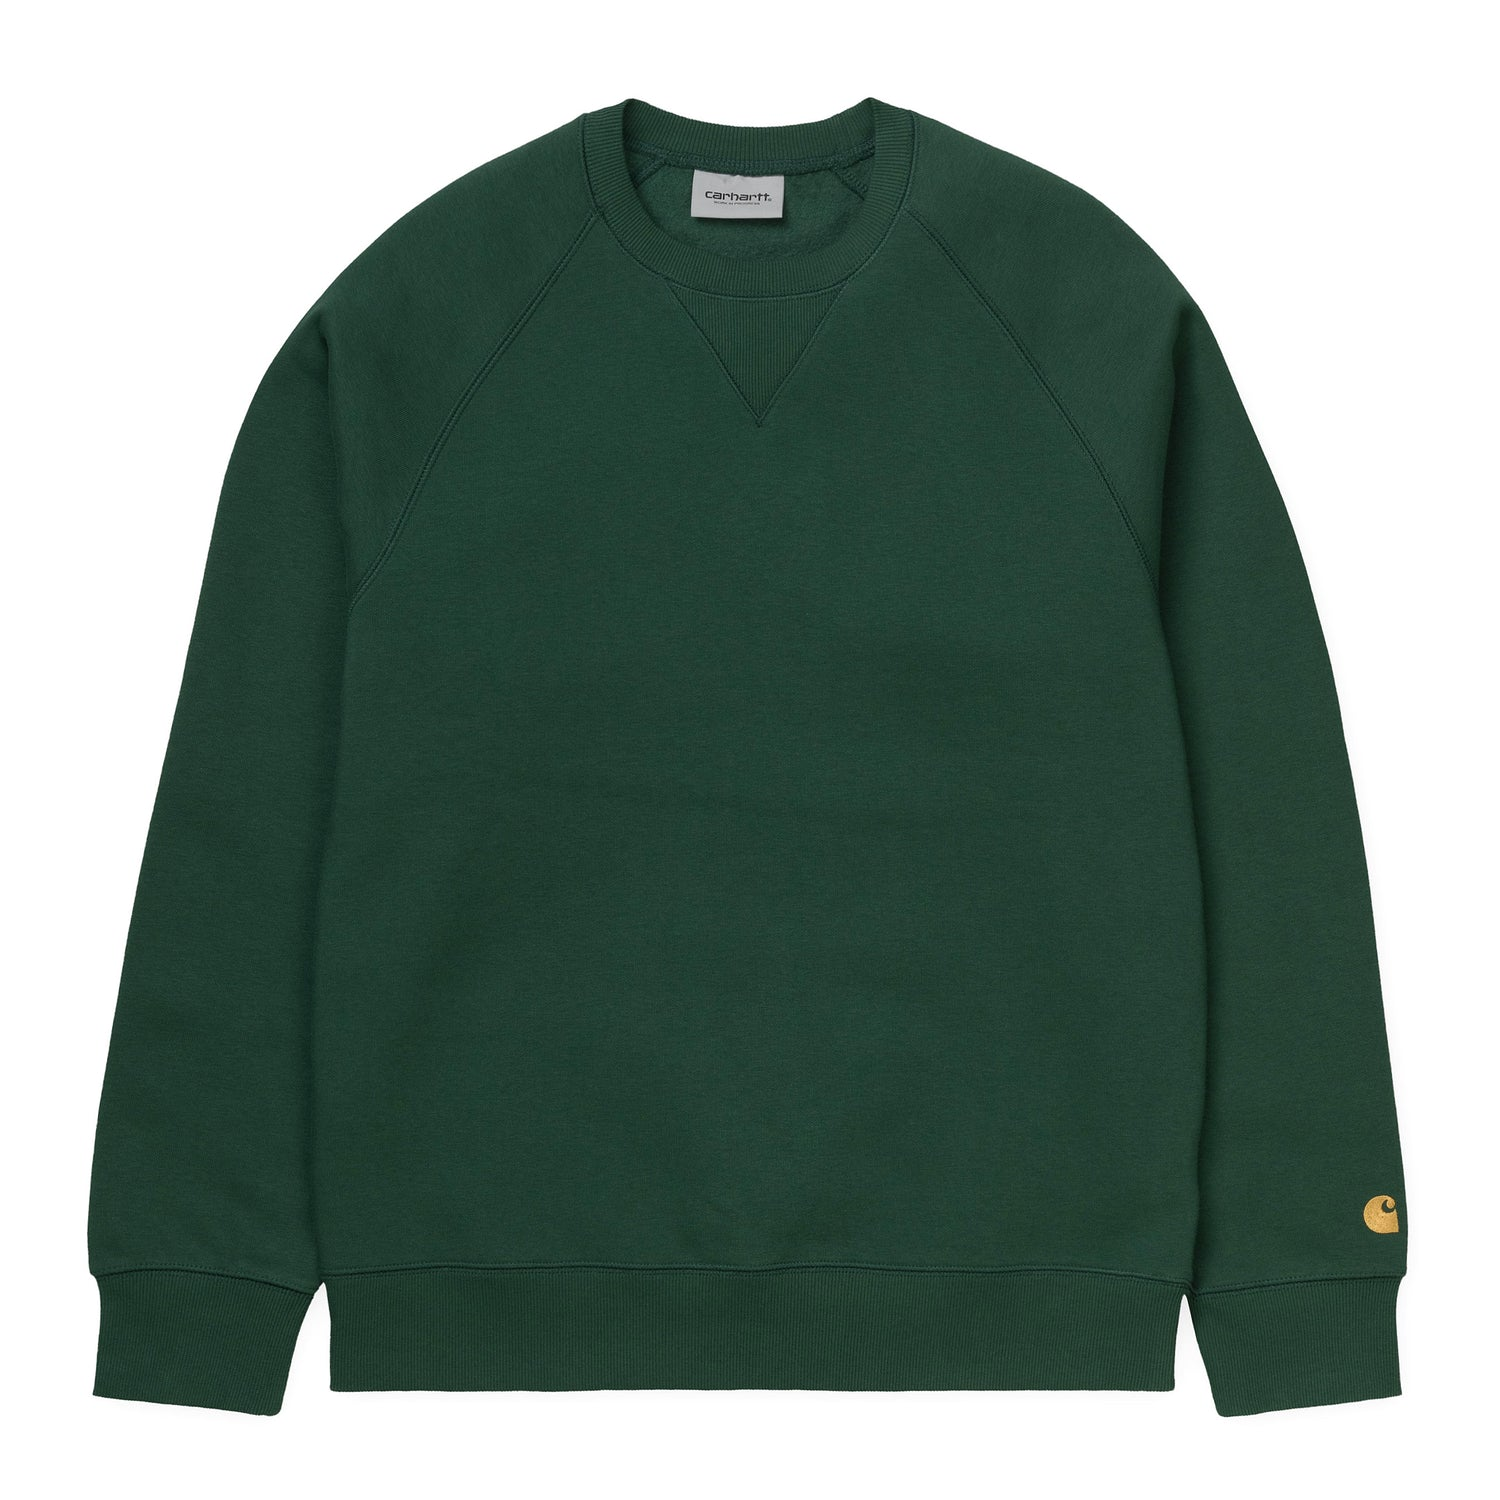 Chase Sweatshirt, Bottle Green